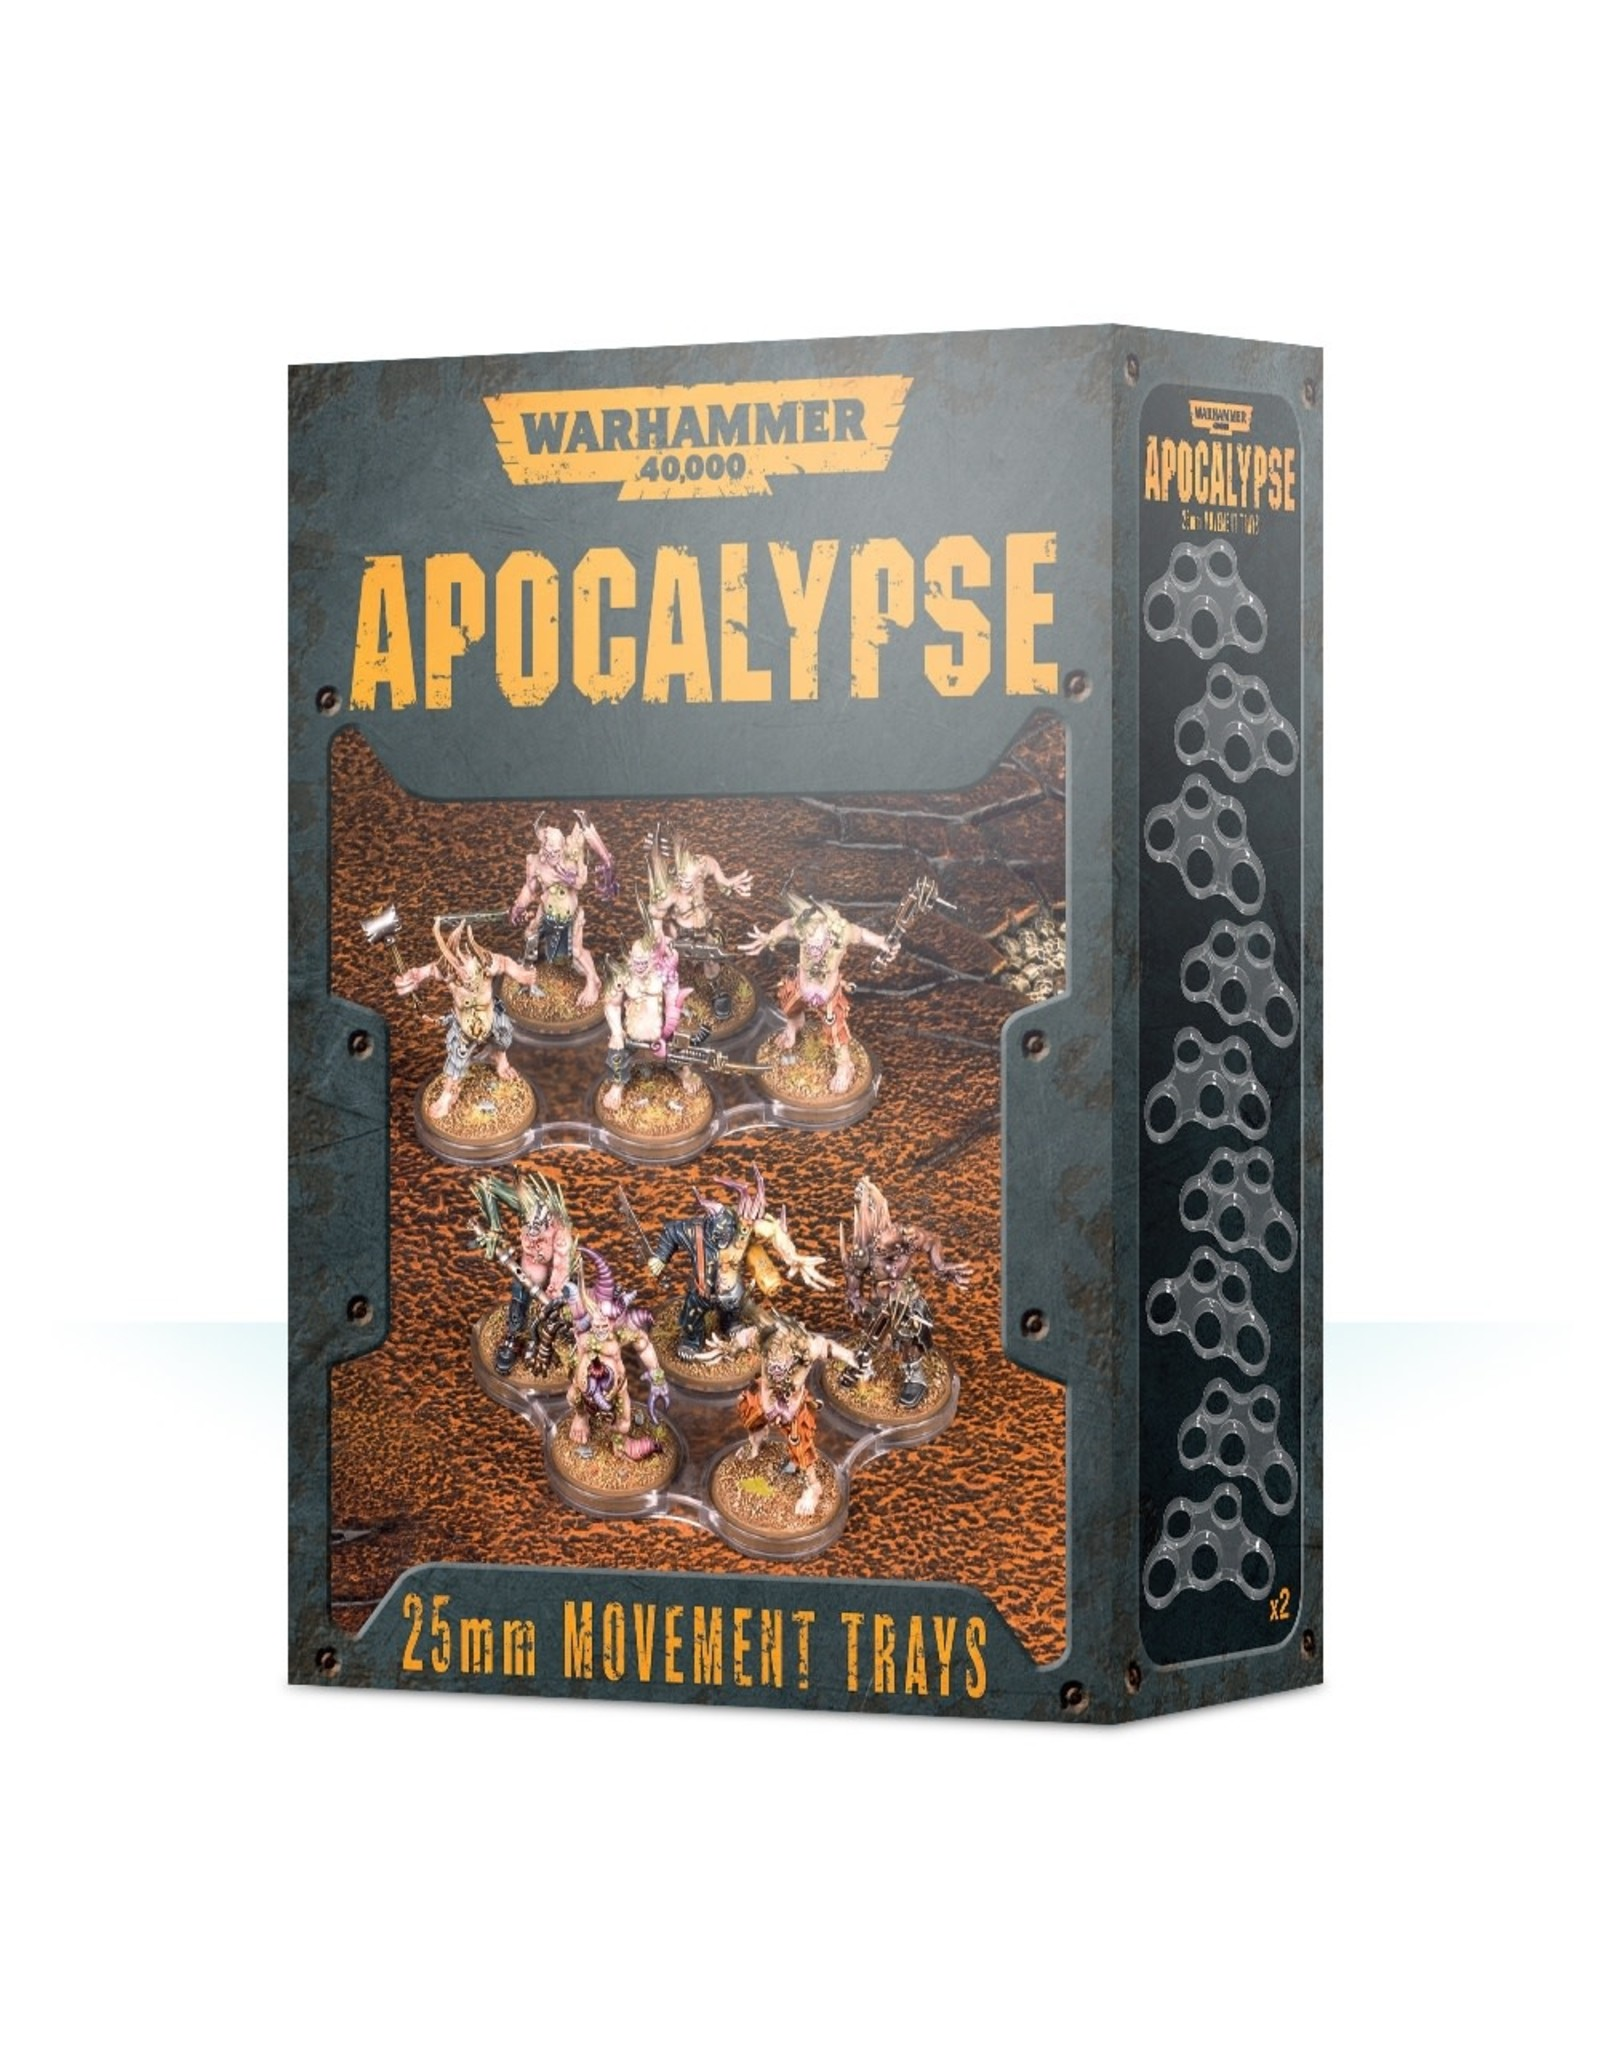 Games Workshop Apocalypse Movement Trays: 25mm